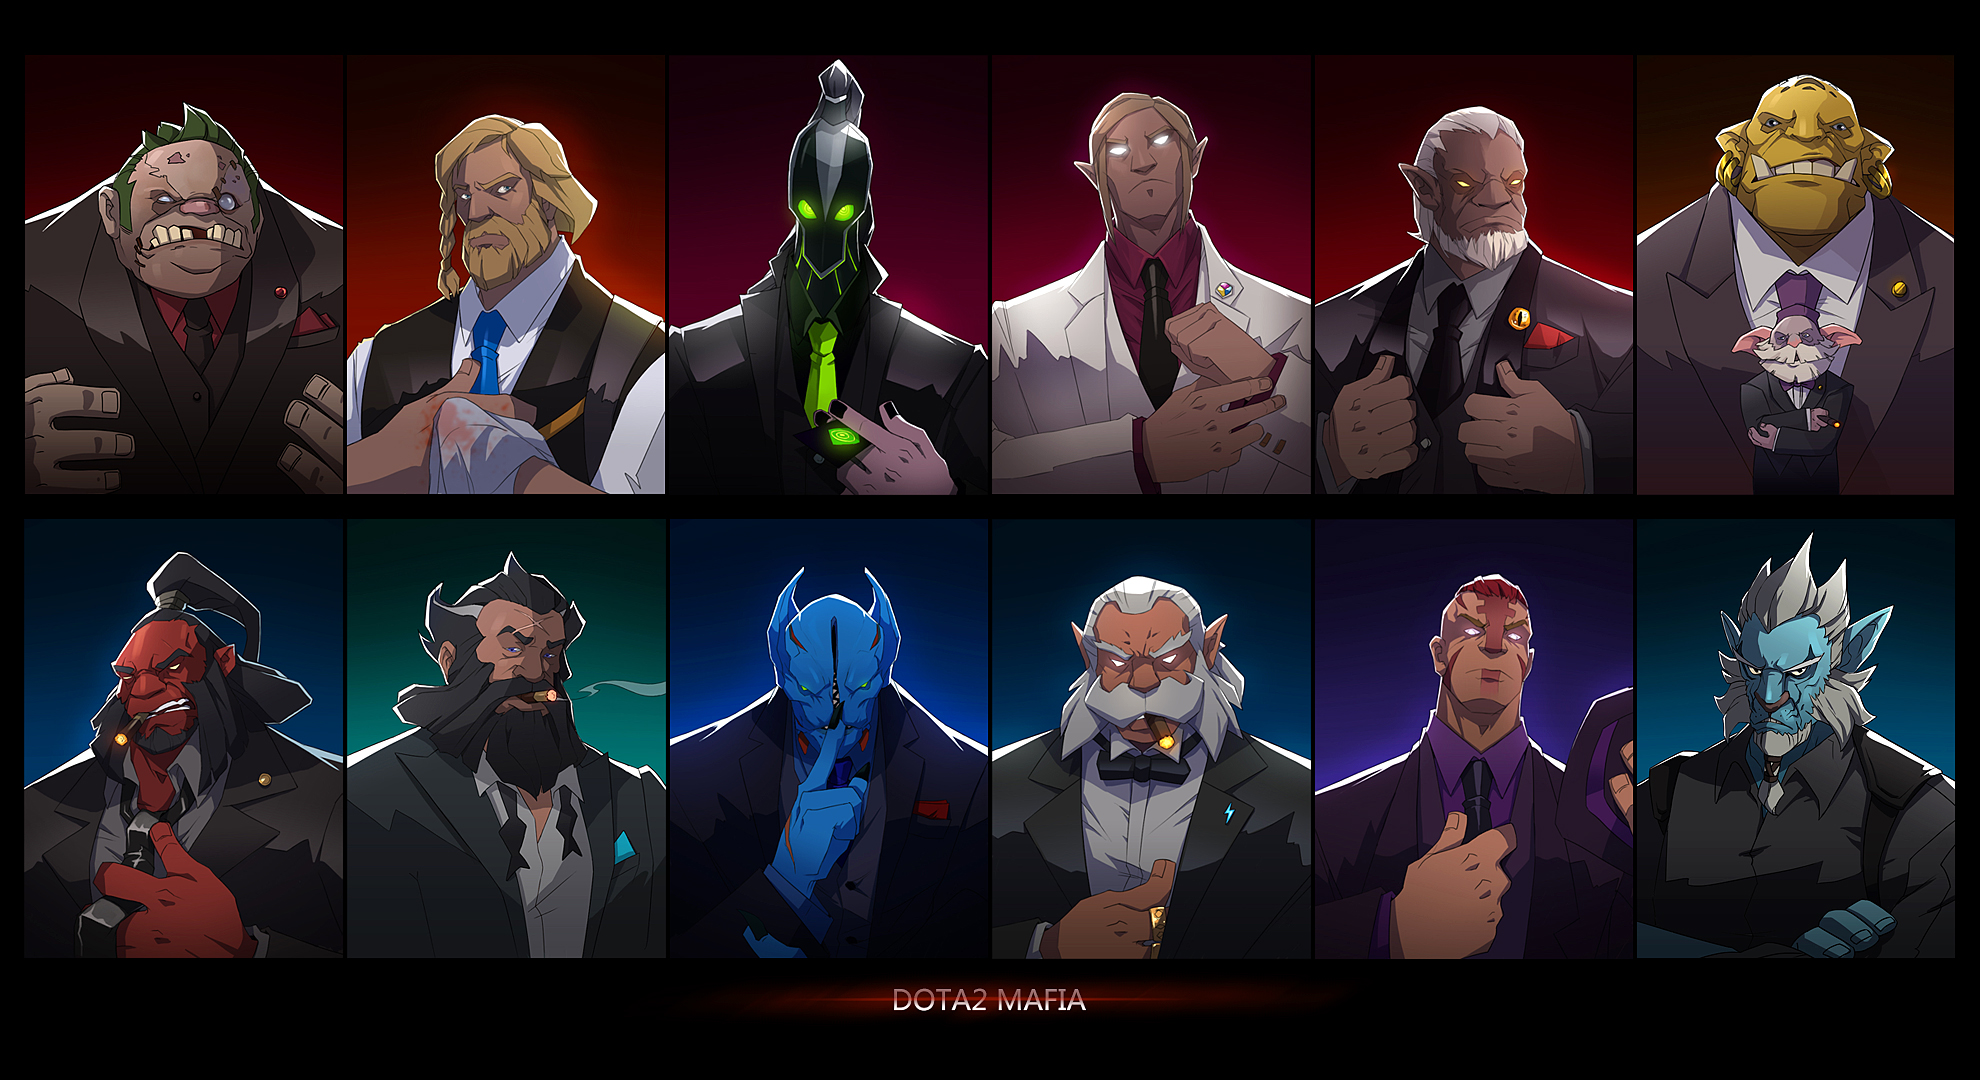 dota2 wallpaper by biggreenpepper on deviantart